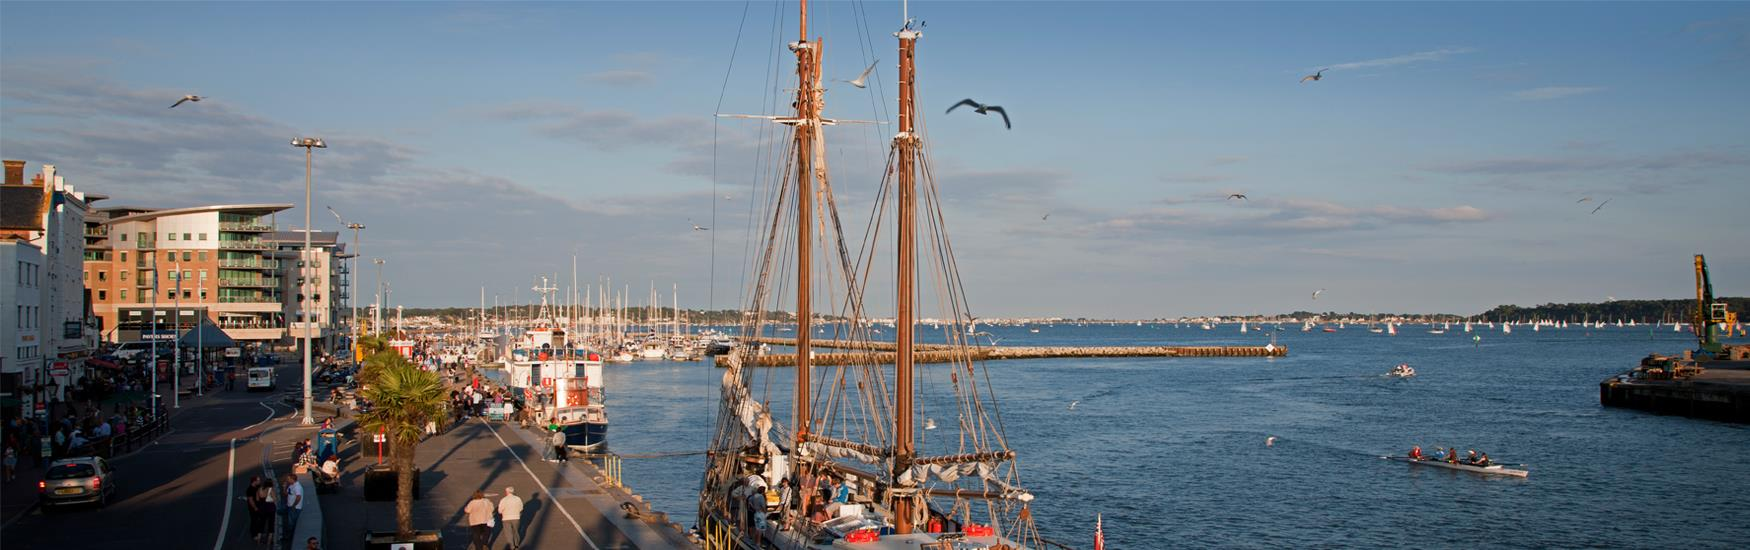 Visit the neighbouring town of Poole © Poole Tourism